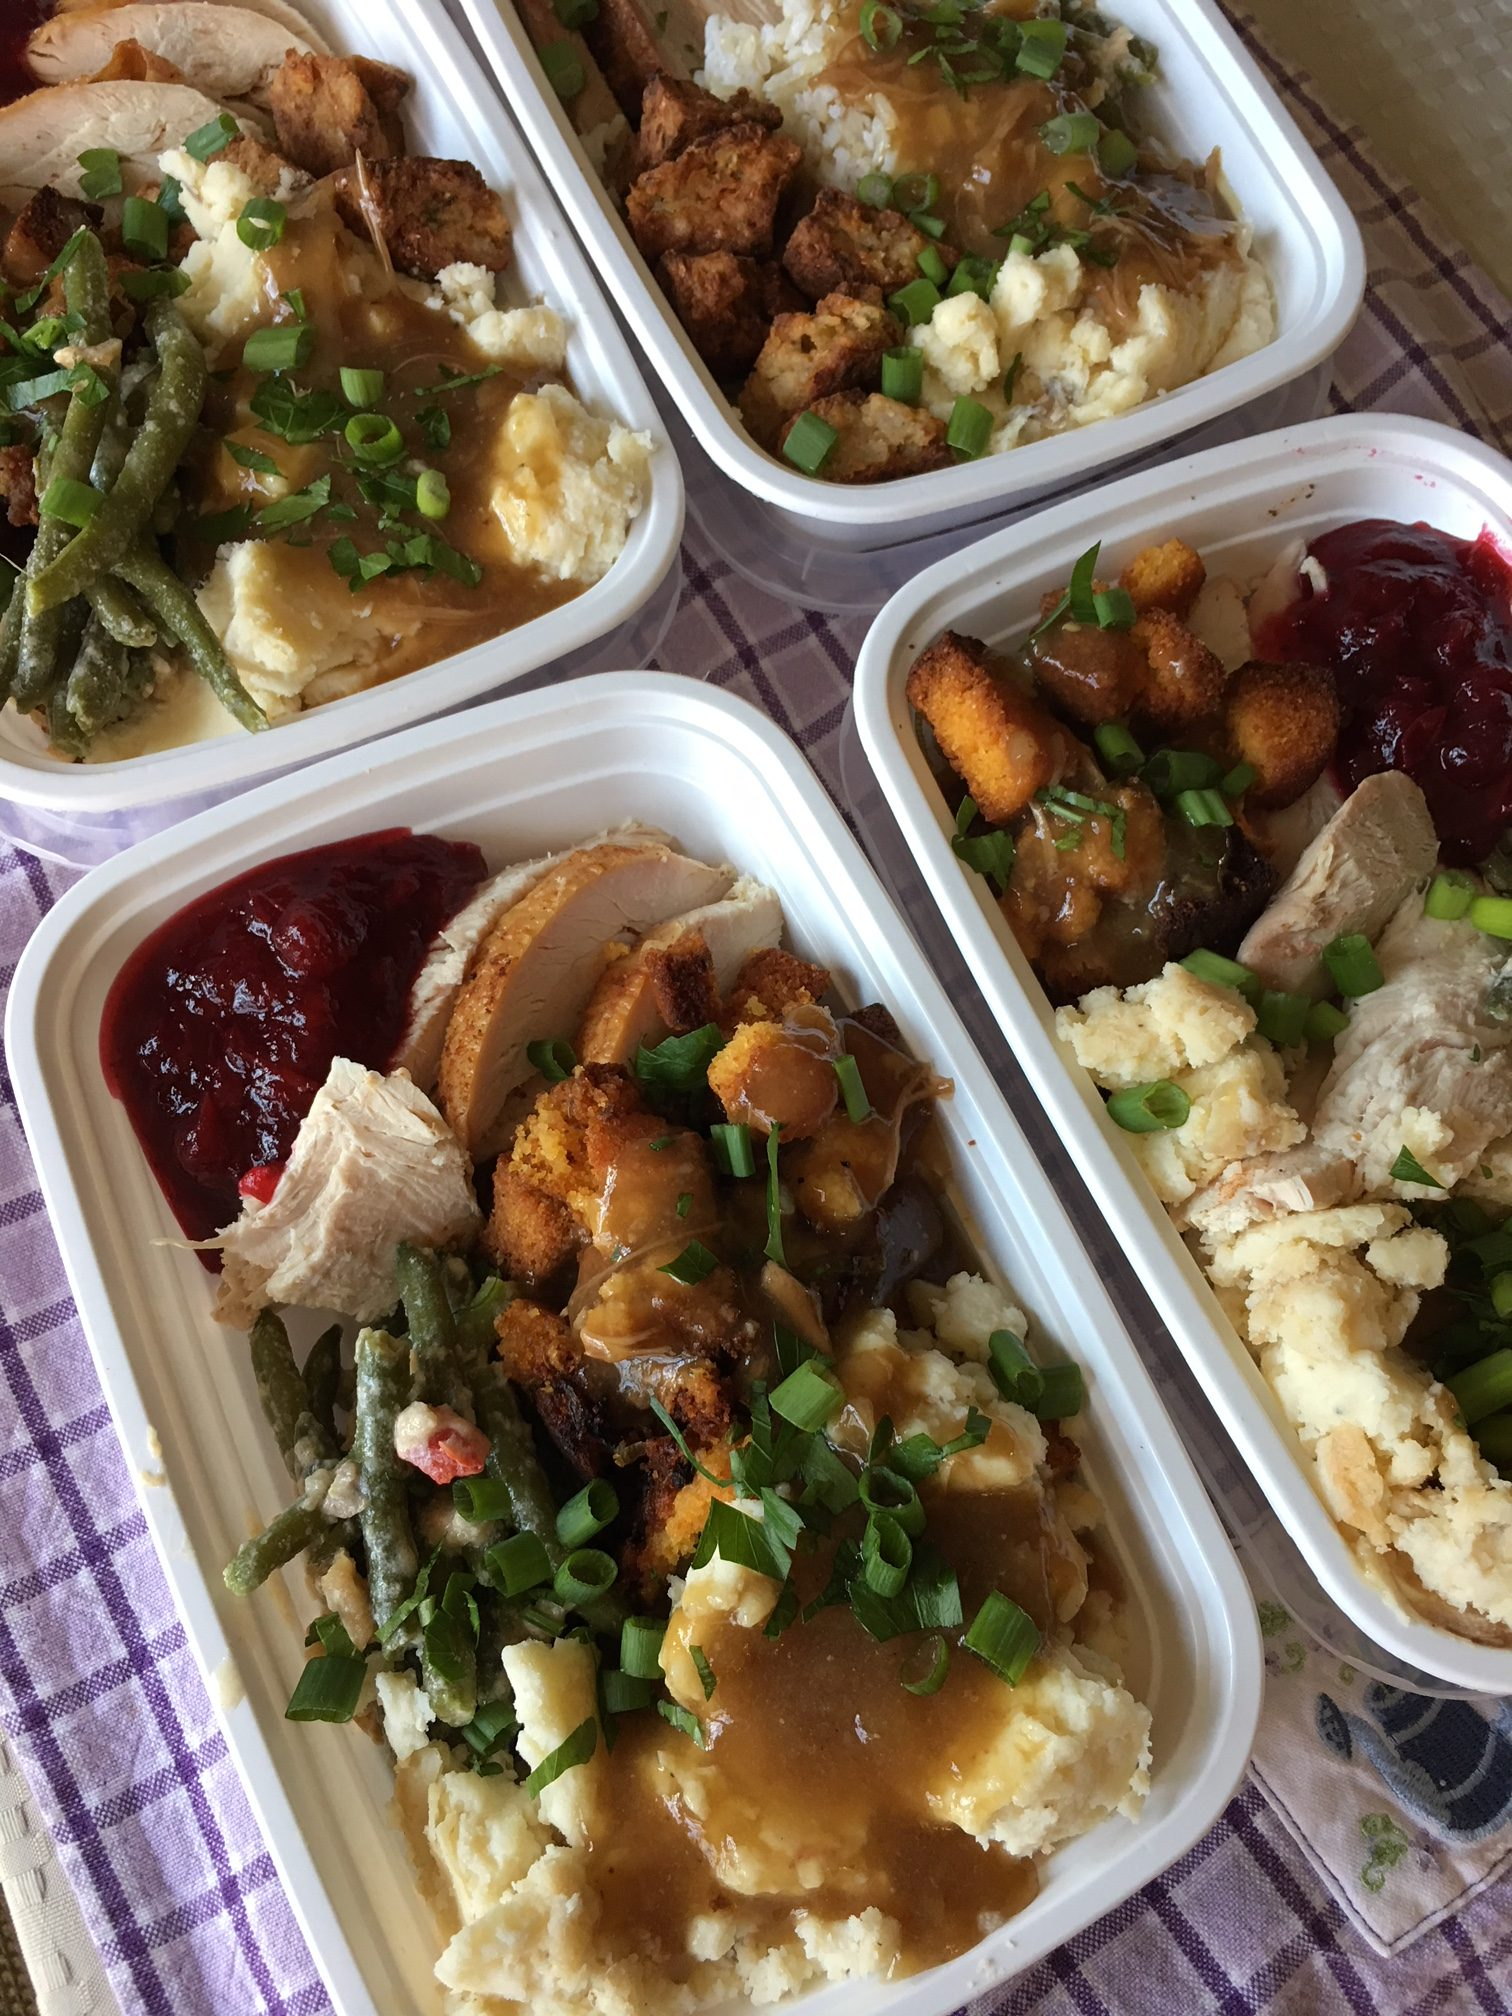 Leftover turkey meals